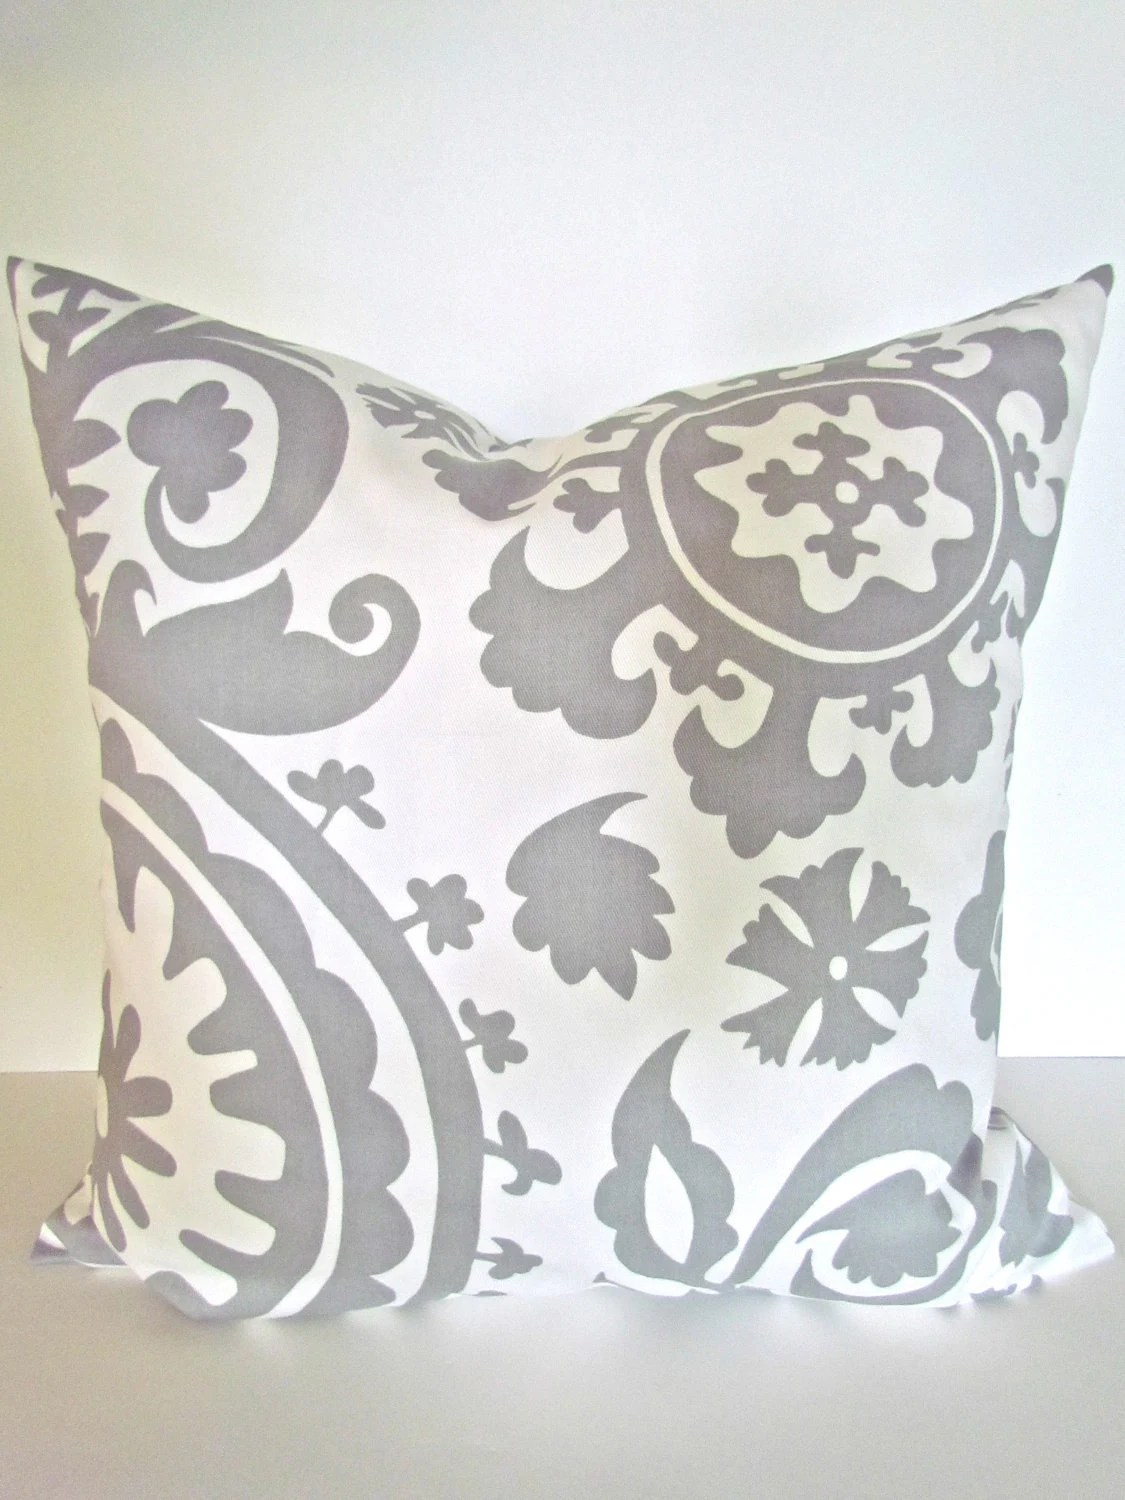 GRAY PILLOW 20x20 Throw Pillow Covers by SayItWithPillows on Etsy